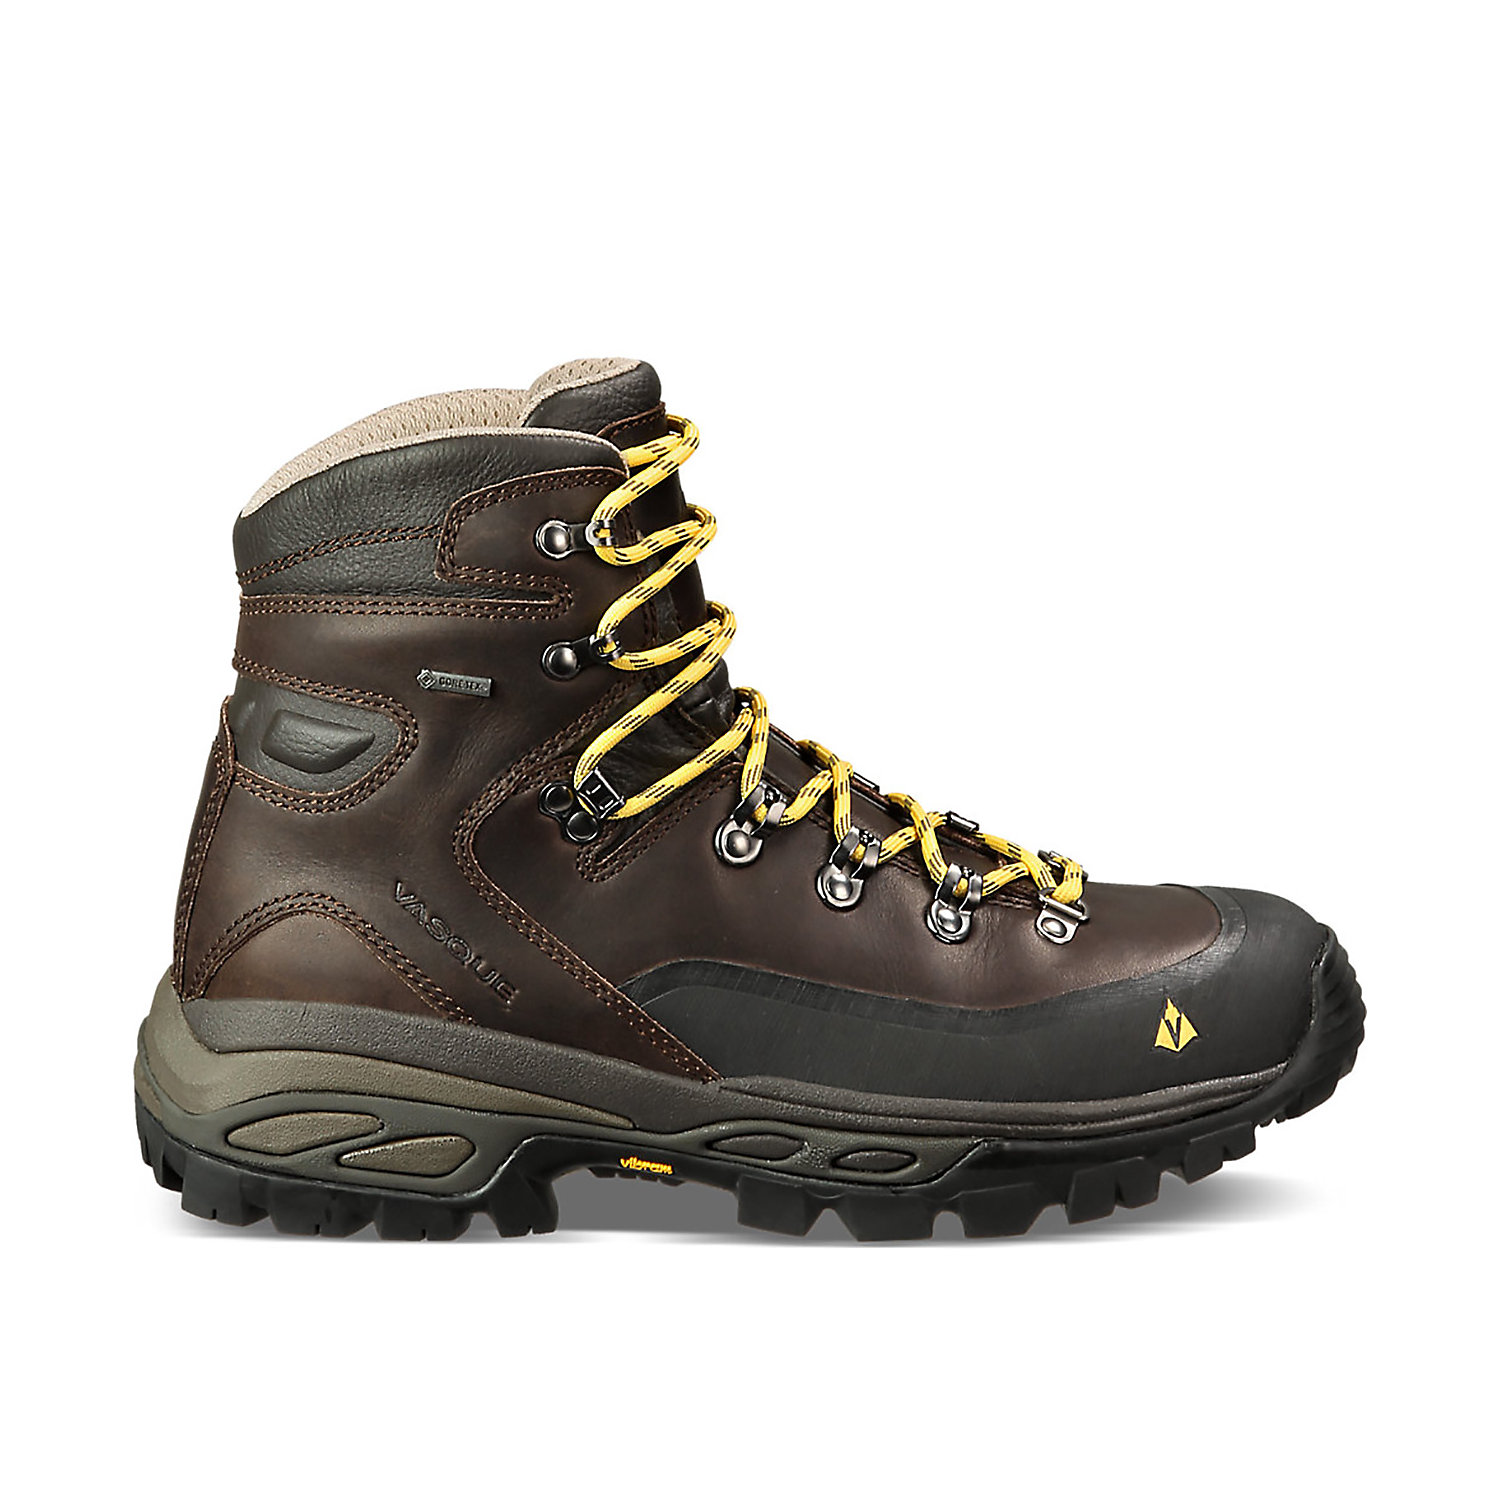 fb3e3c572da Vasque Men's Eriksson GTX Boot